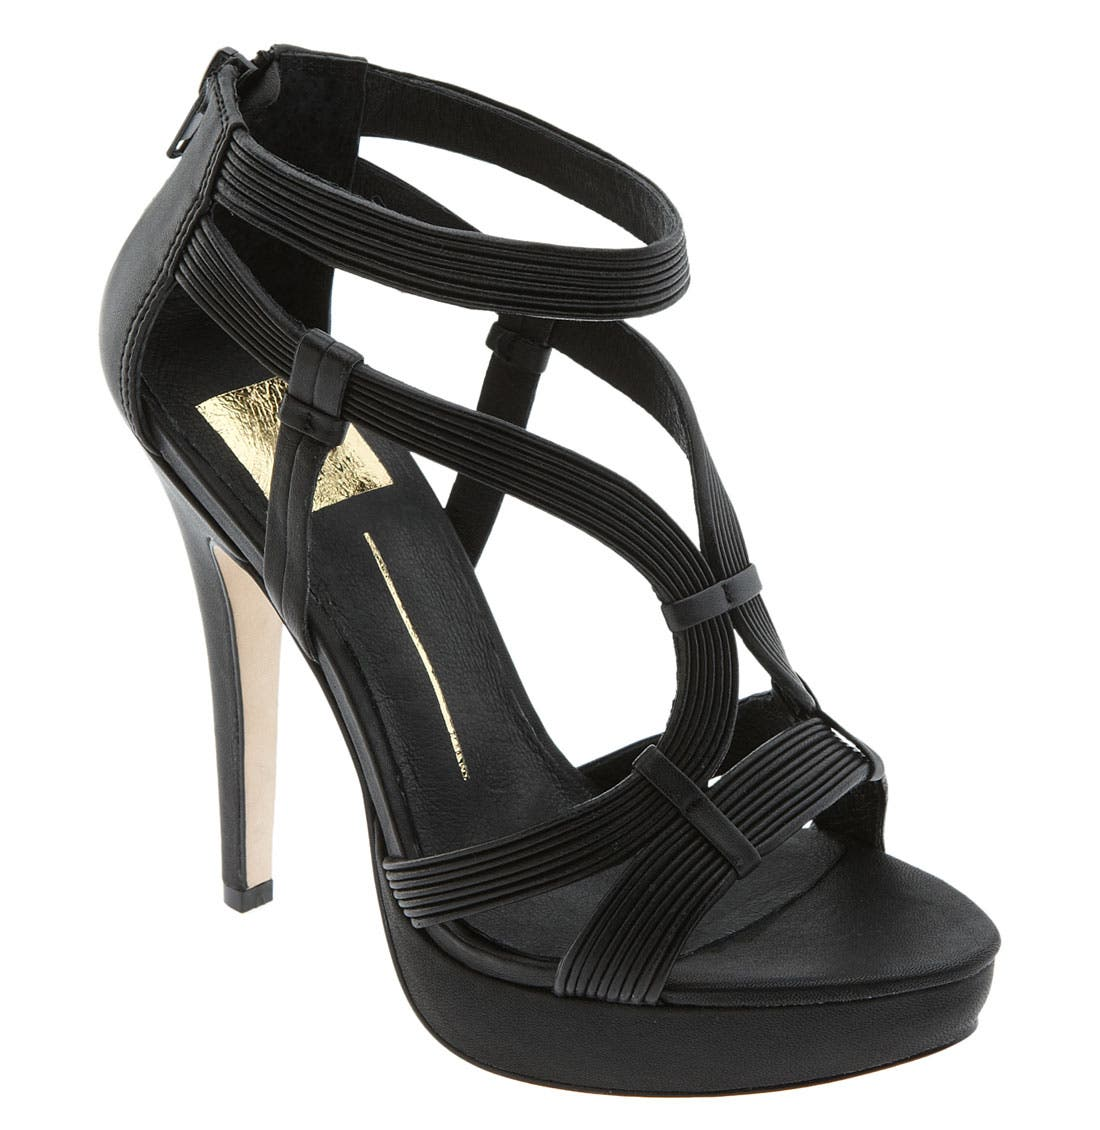 Alternate Image 1 Selected - Dolce Vita 'Lance' Sandal